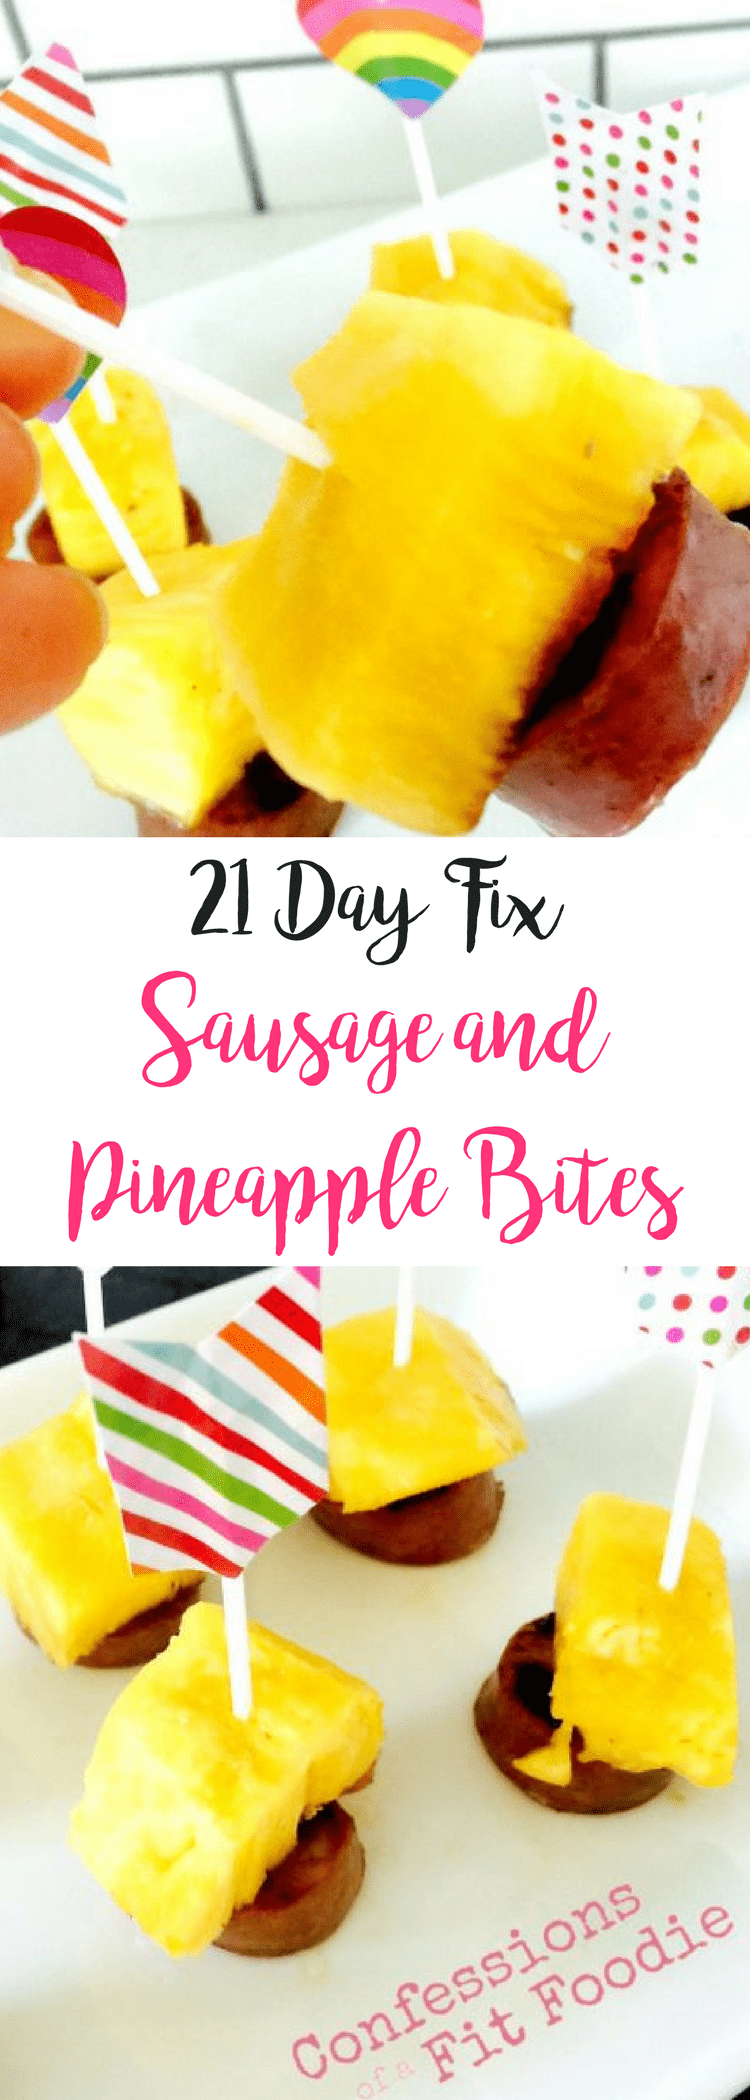 21 Day Fix Sausage and Pineapple Bites | Confessions of a Fit Foodie